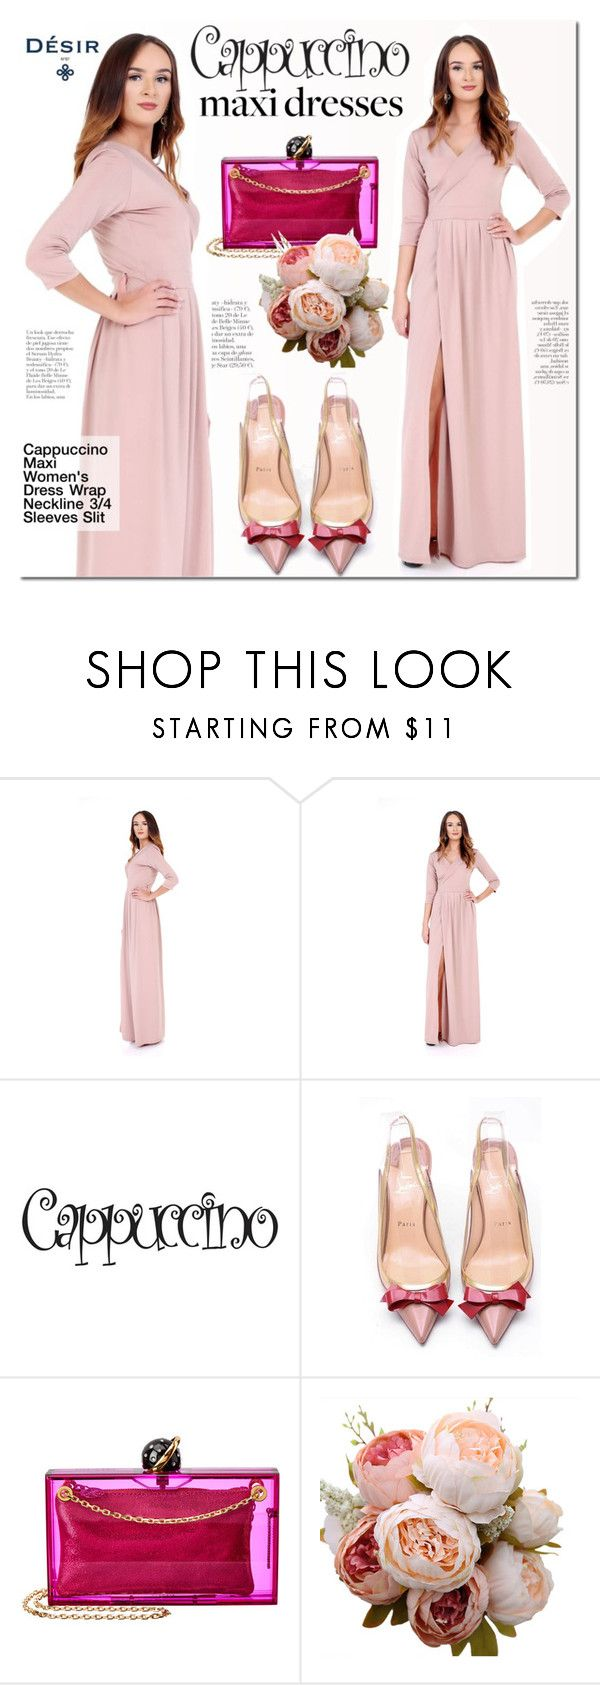 Desir Vale maxi dress by mada-malureanu on Polyvore featuring Christian Louboutin, Charlotte Olympia, dress, maxidress, summerstyle, dreamydress, DesirVale and plus size dresses